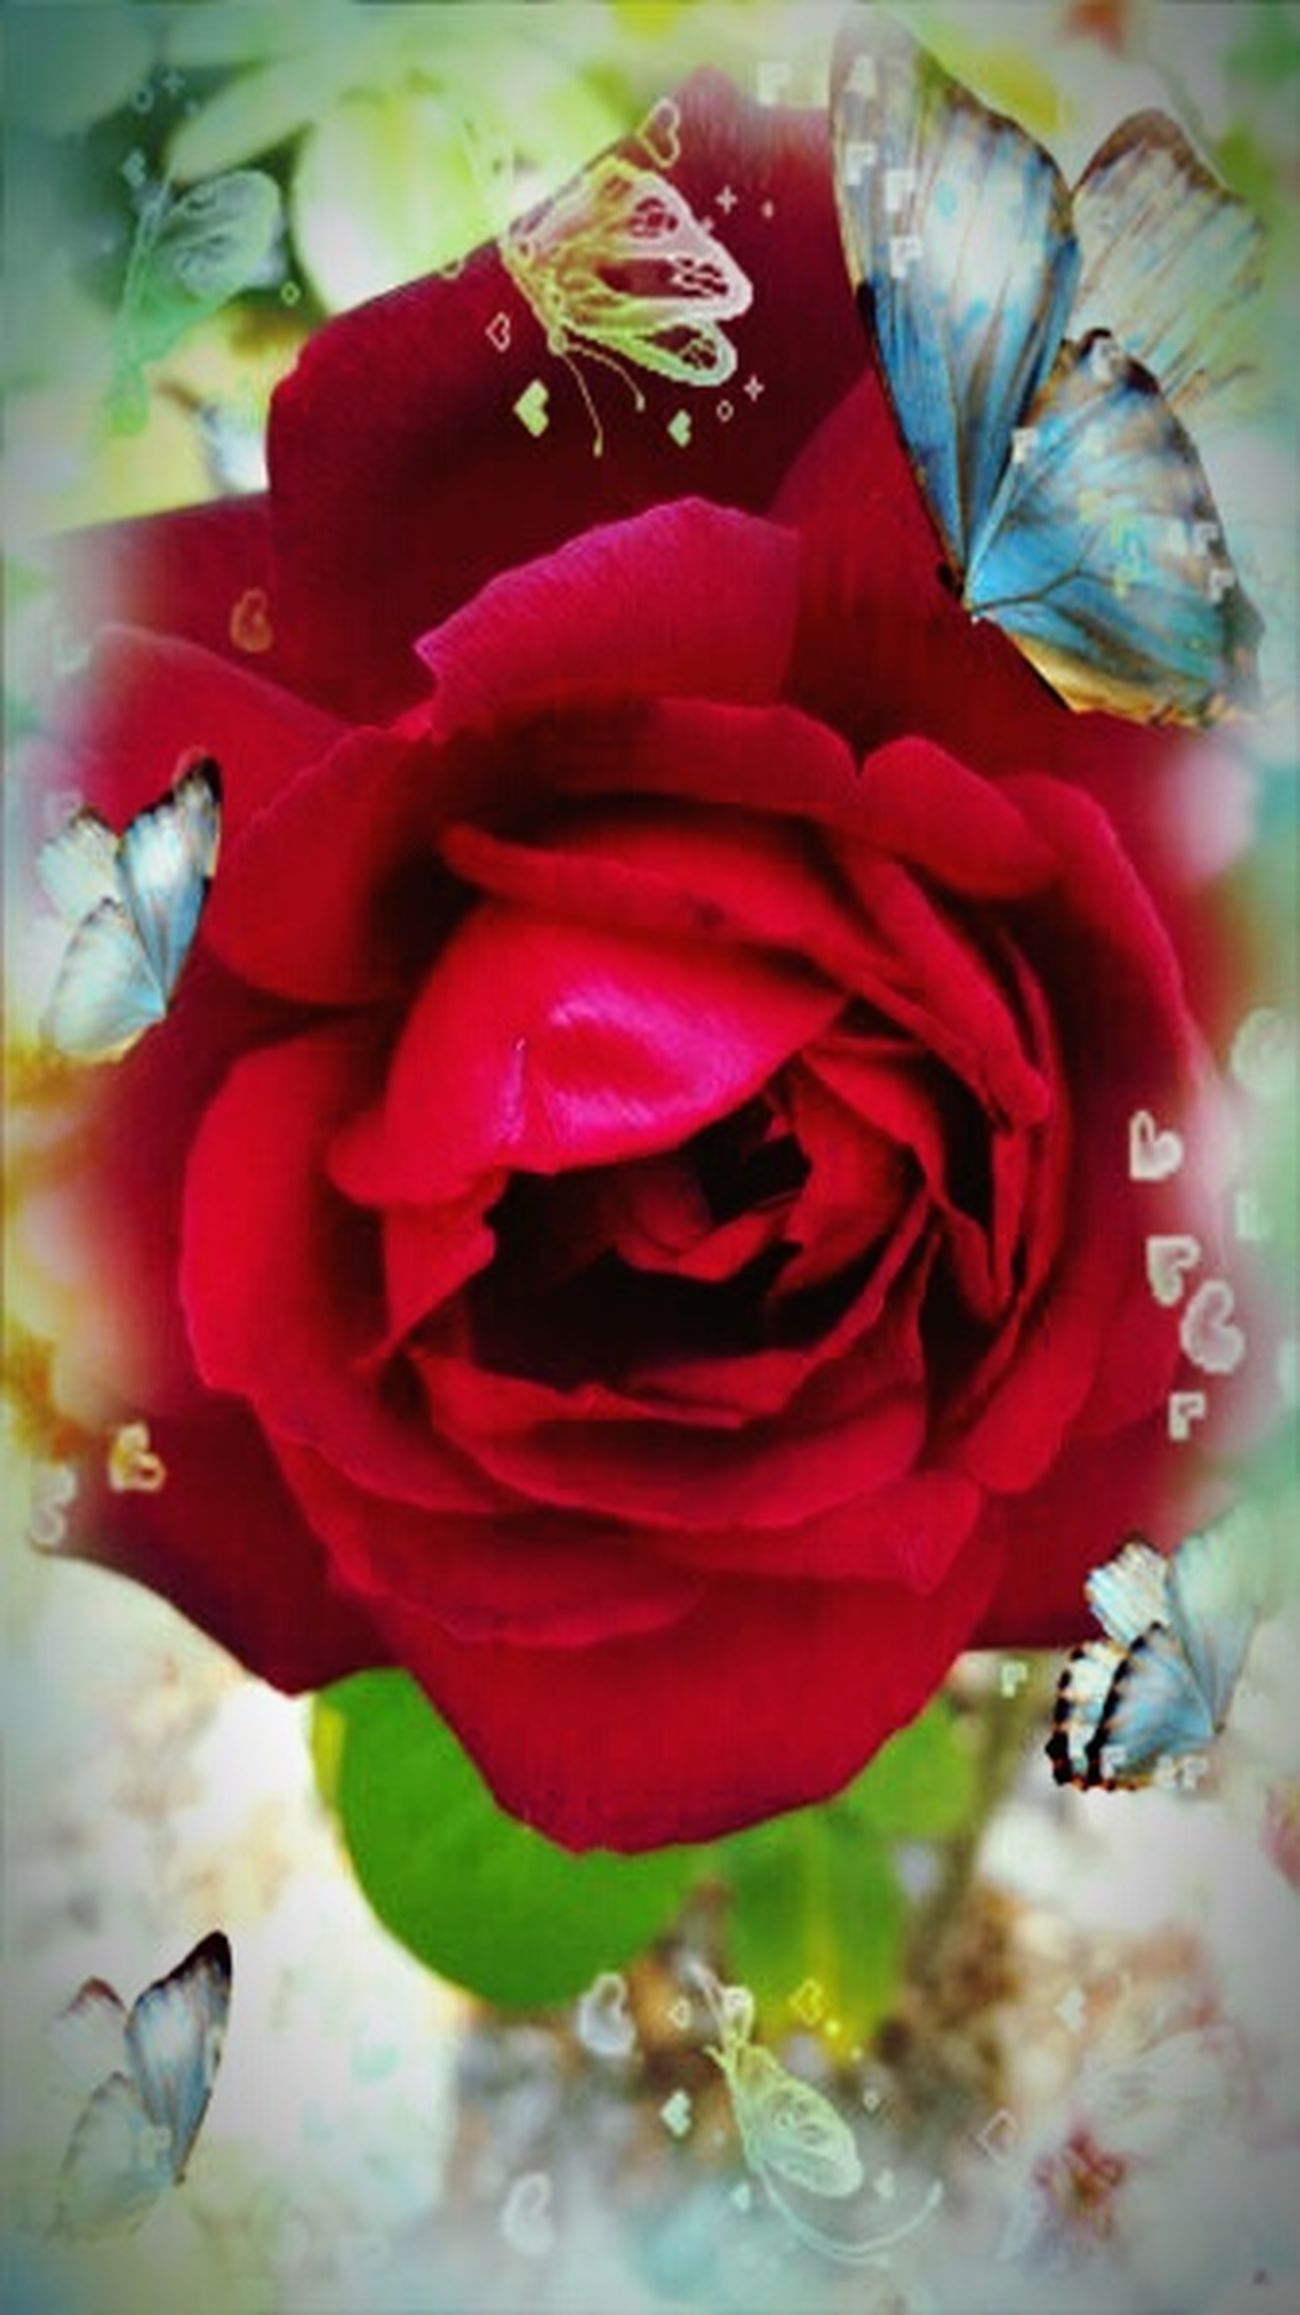 Beautiful Roses🌹 Beautiful Red Rose Love This Picture.